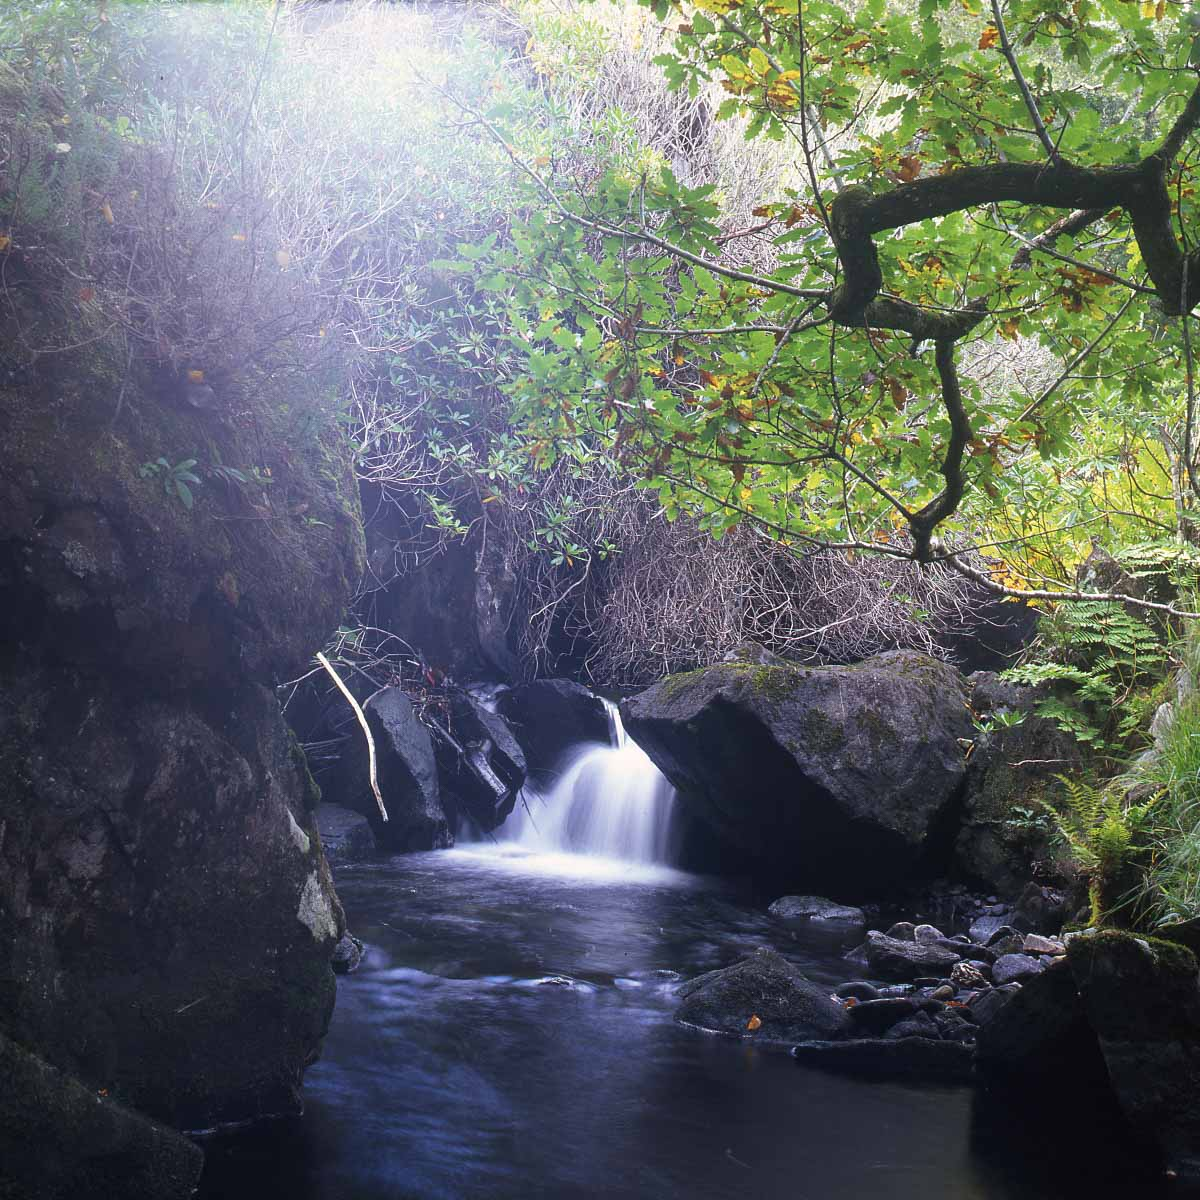 Yashica Mat 124 - Waterfall with Flare, Fuji VELVIA 100 RVP100